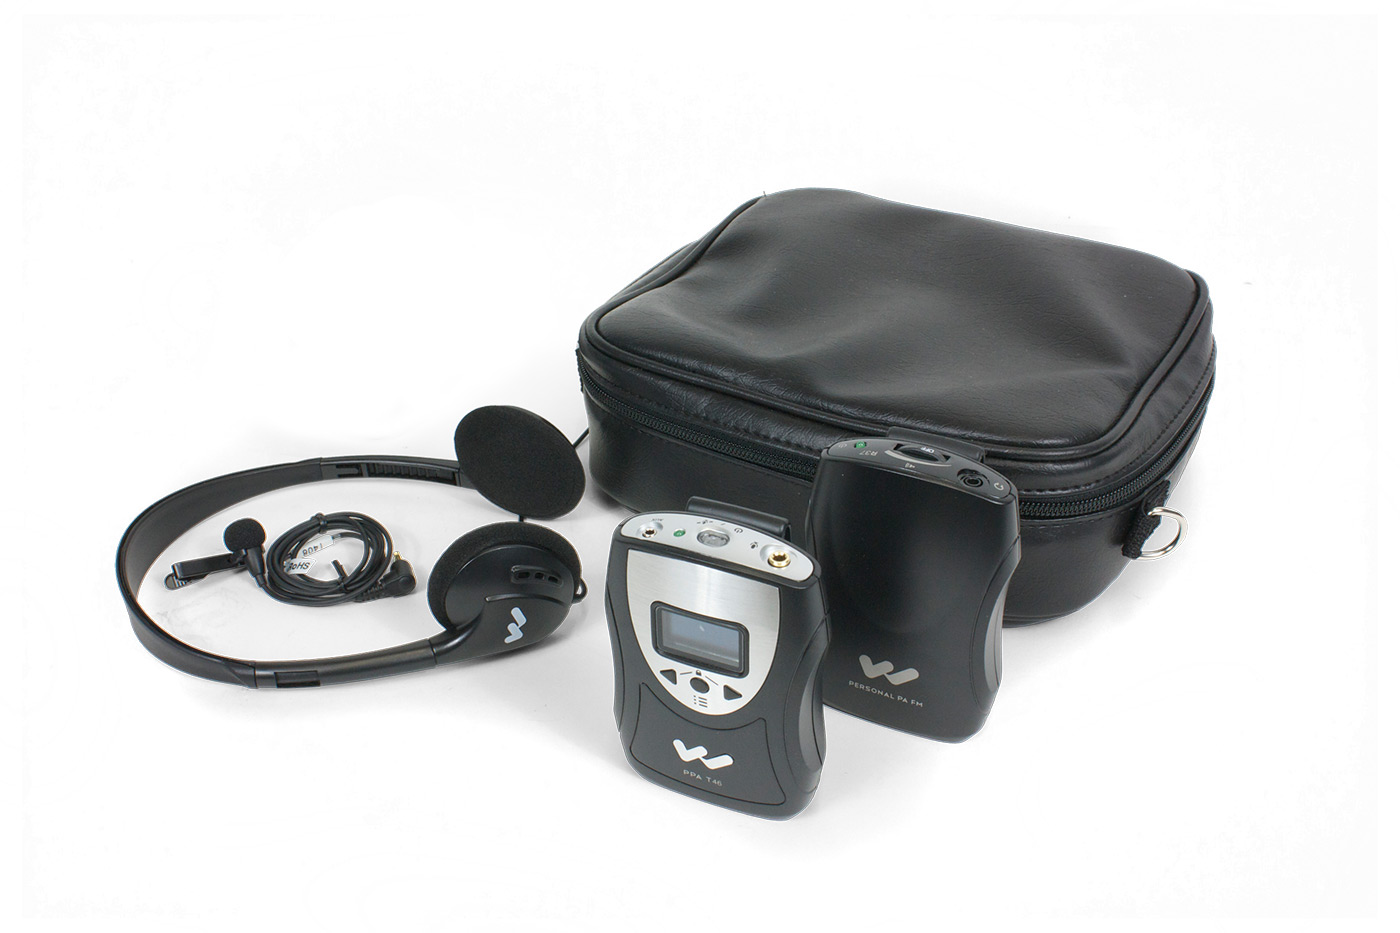 An Assistive Listening Device FM system with headphones, a receiver, and a transmitter.